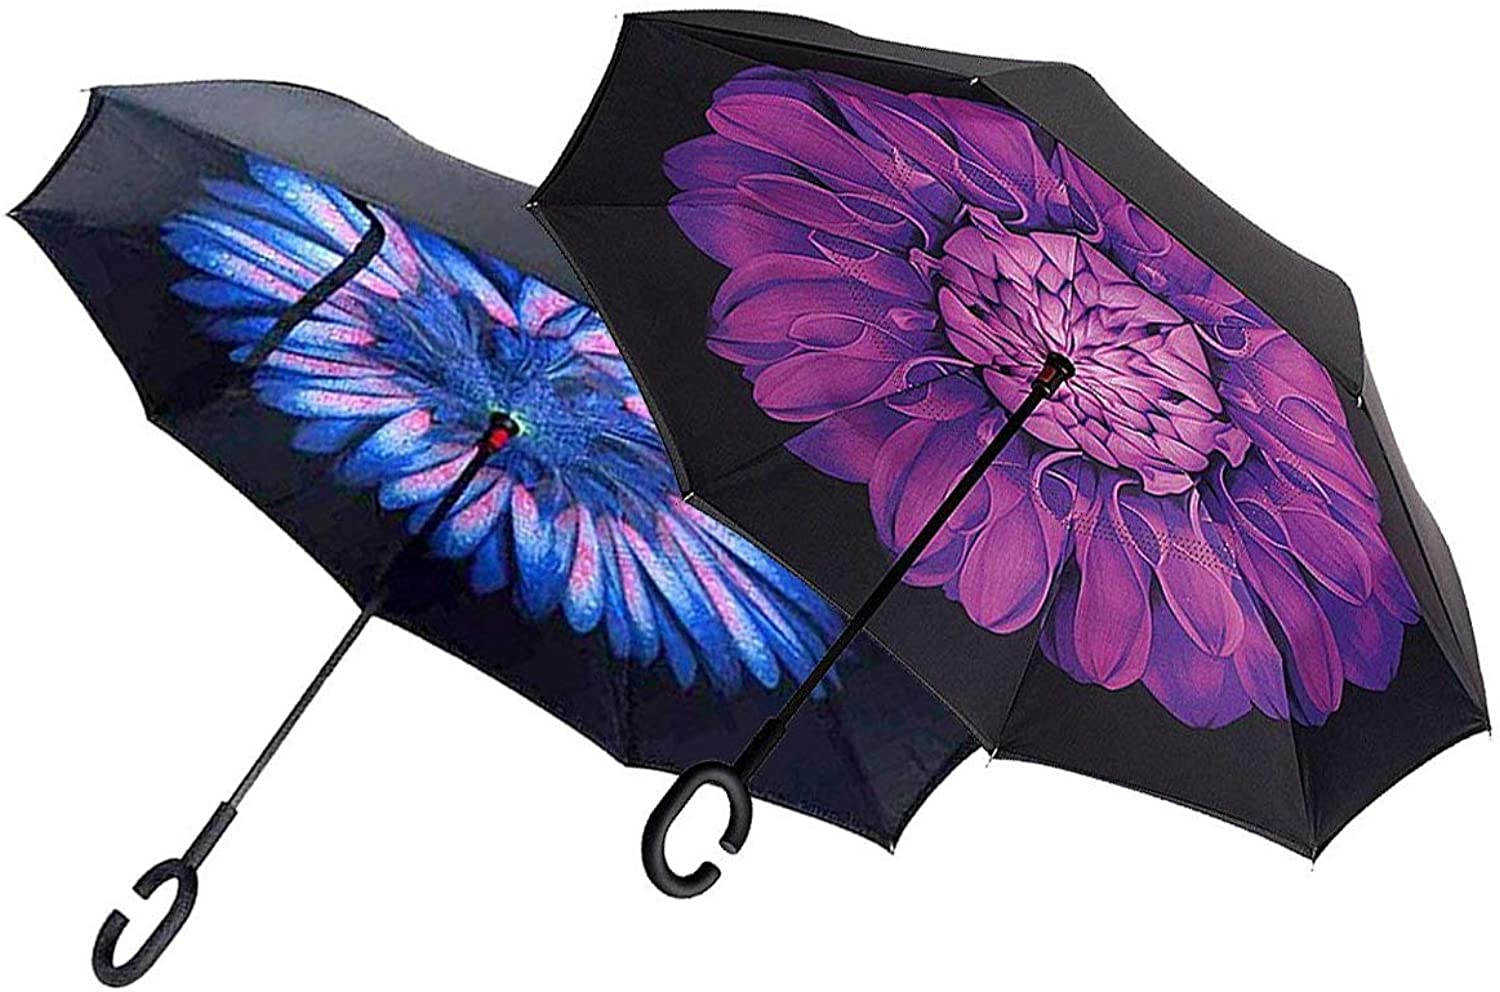 Set of 2 Ingreened Umbrella Windproof Reverse Double Layer Umbrella with Cshaped Hands Purple Flower& blueee Feathers B118451We Pay Your Sales Tax